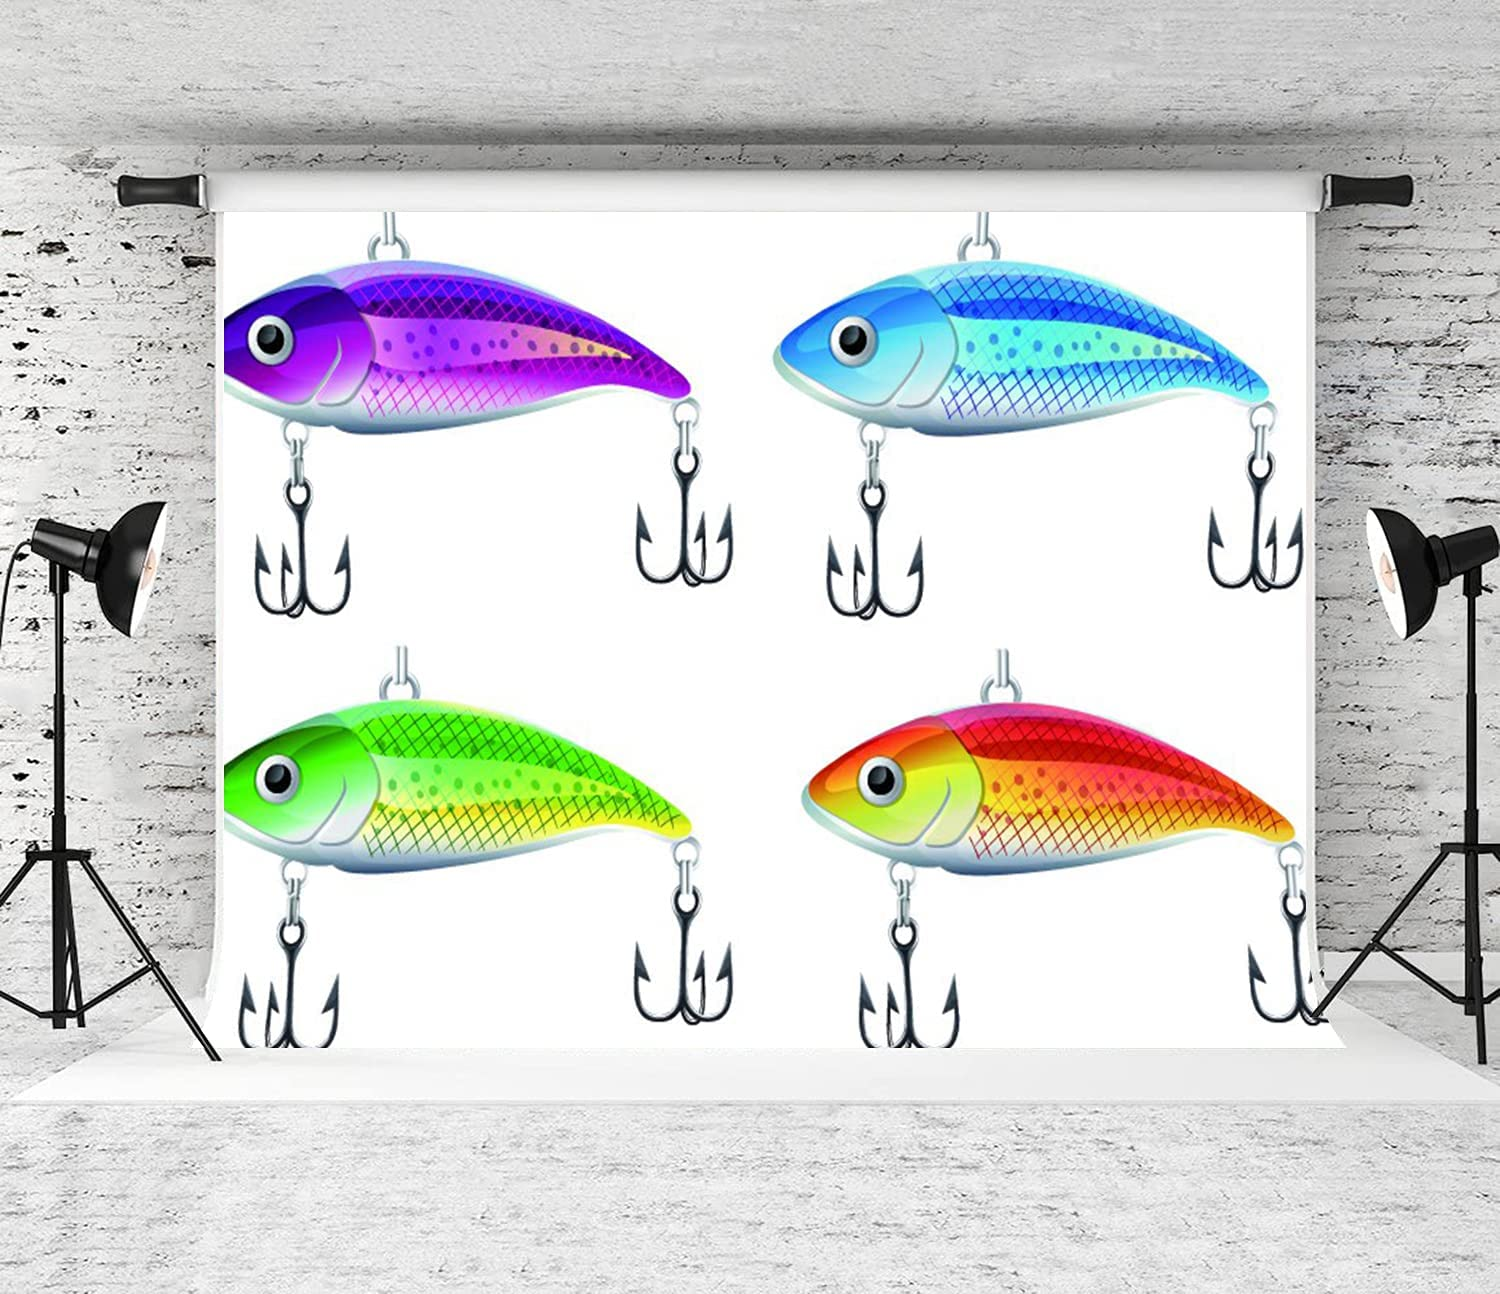 Cheap super special price DYCBNESS Photography Max 65% OFF Background Set Illustratio of Fishing Lures